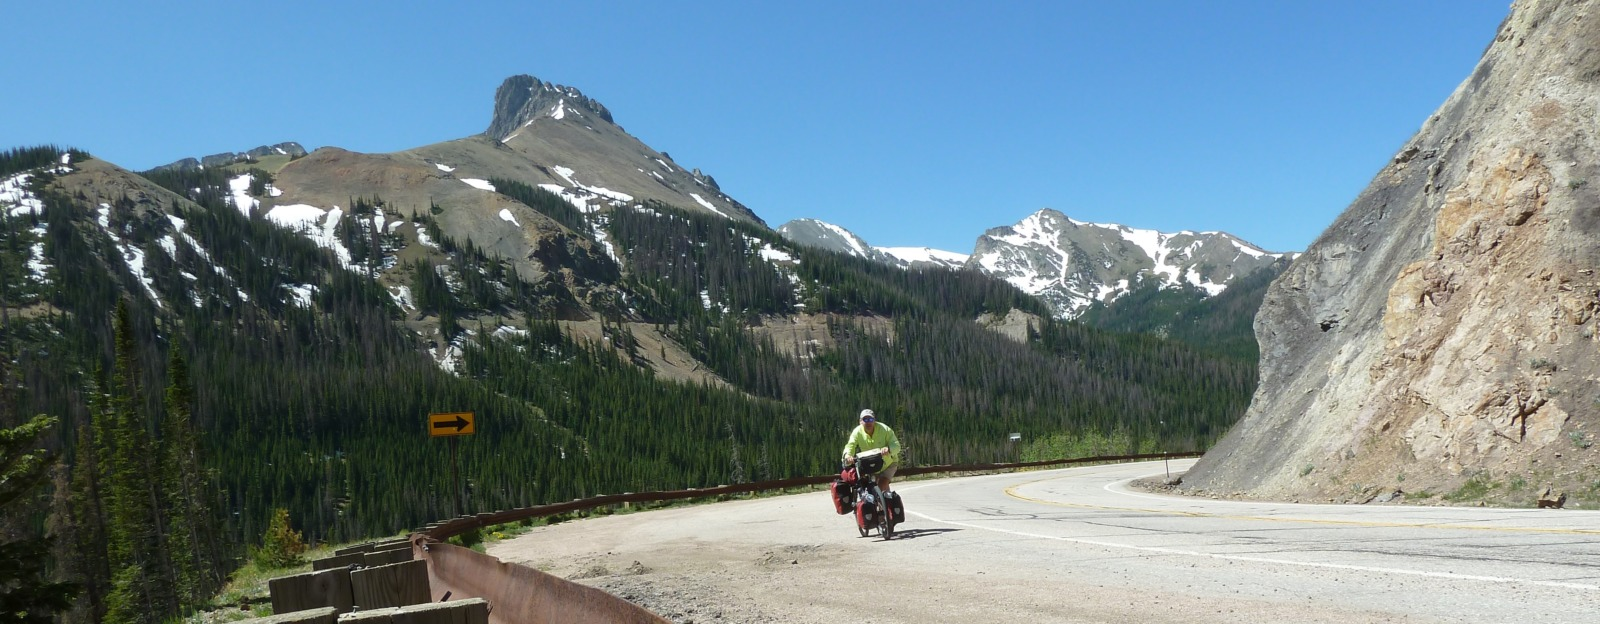 Man cycling on a mountainous road